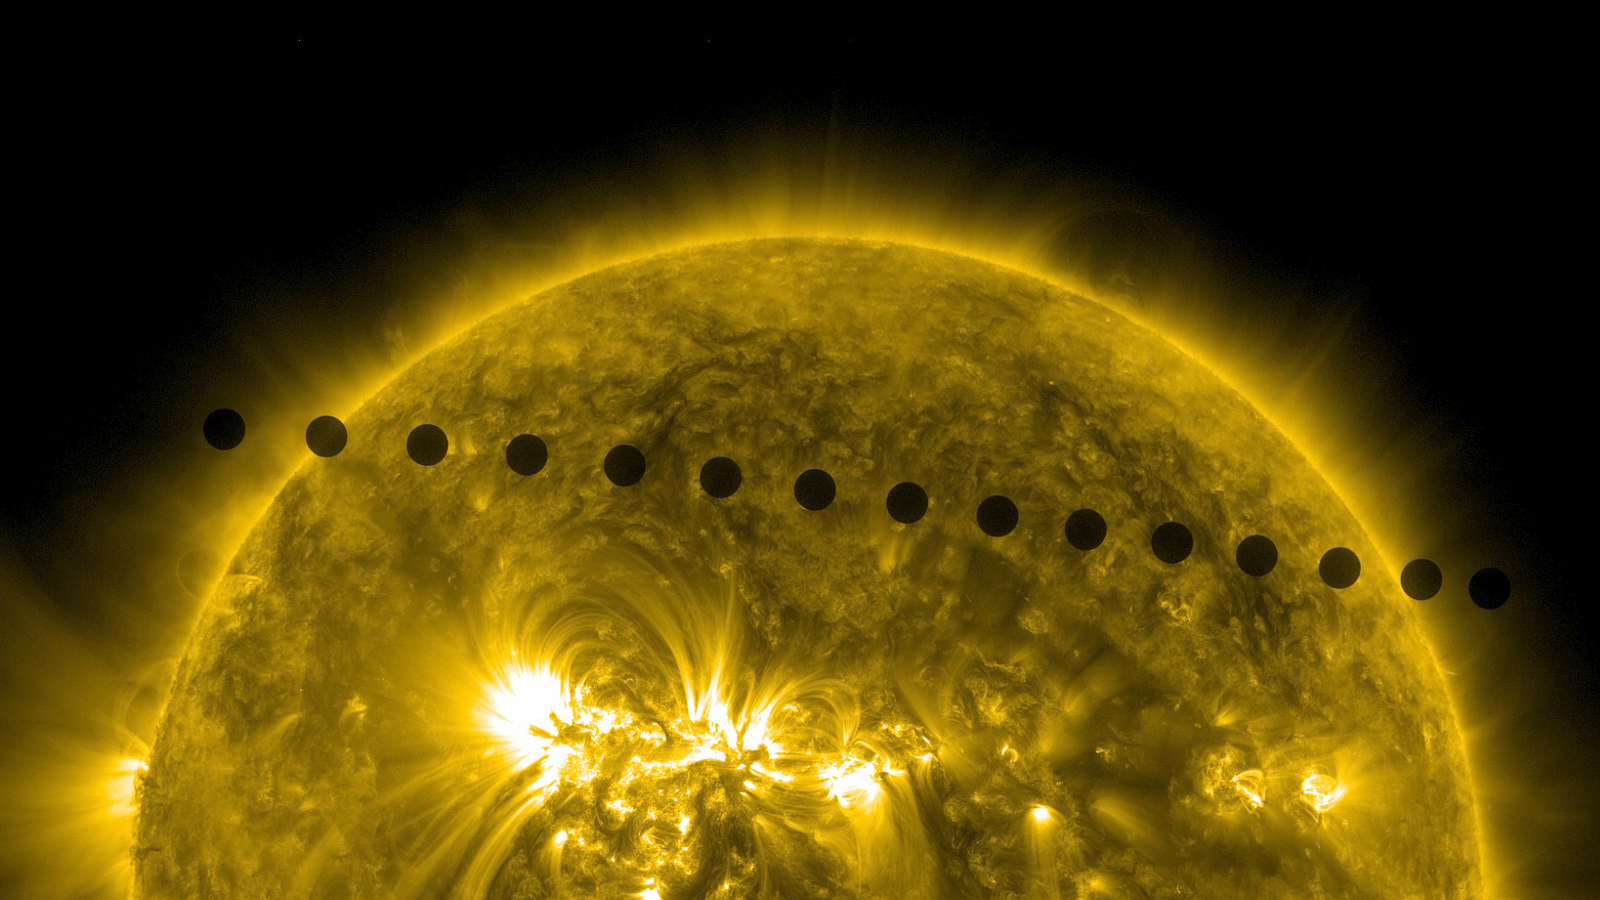 Venus Crosses the Sun for Last Time Until 2117, Skywatchers Rejoice